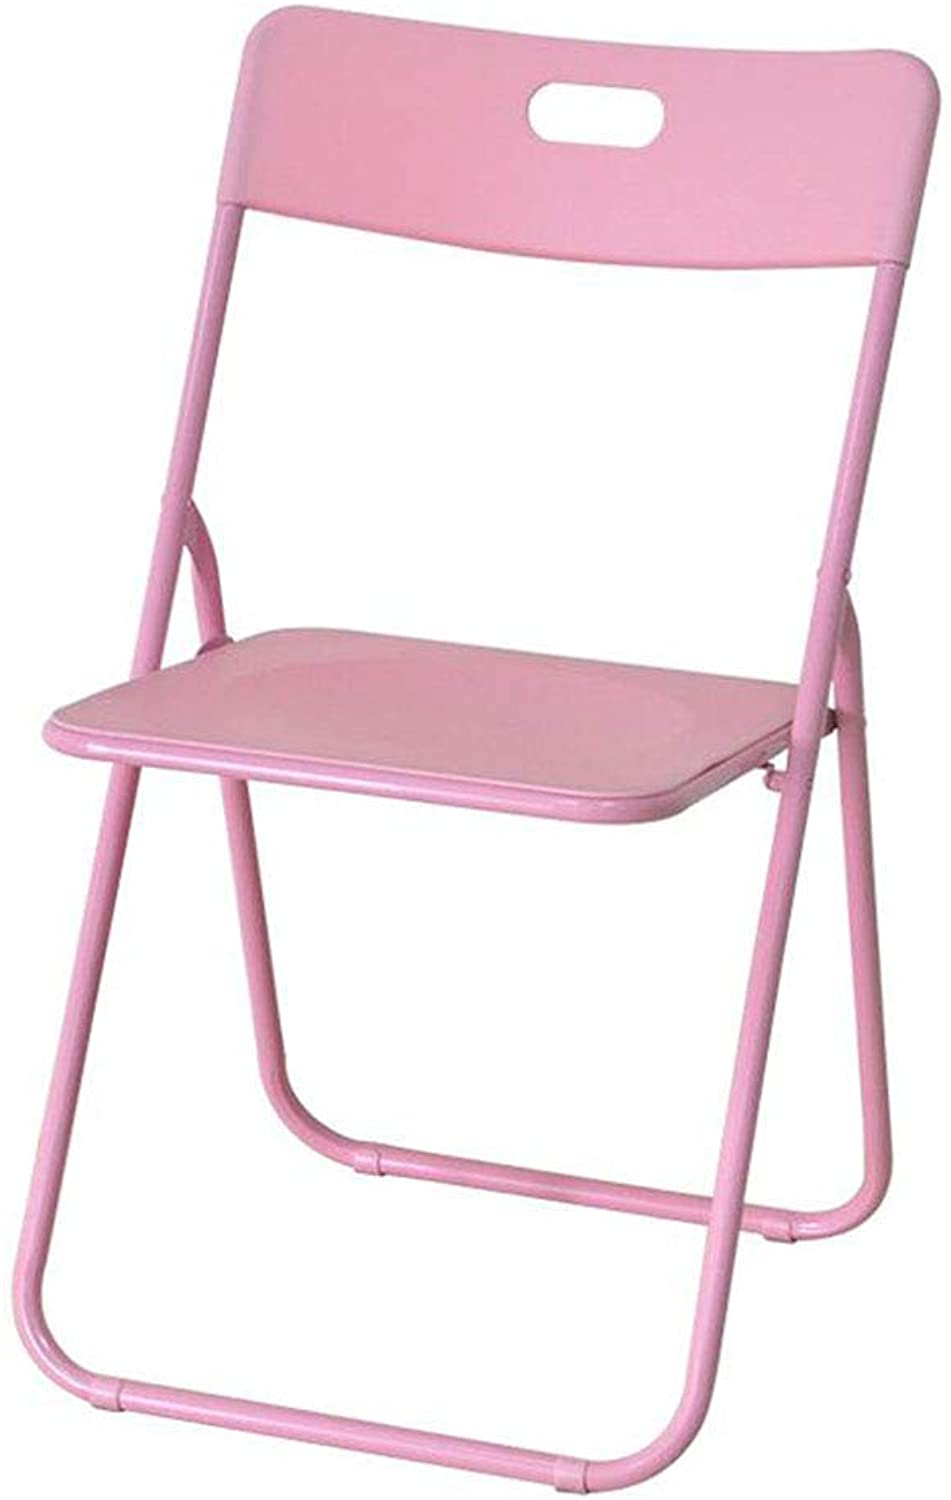 Portable Folding Chair Plastic Household Simple Office Meeting Computer Training Chair with Backrest(46  46  79cm) (color   Pink)